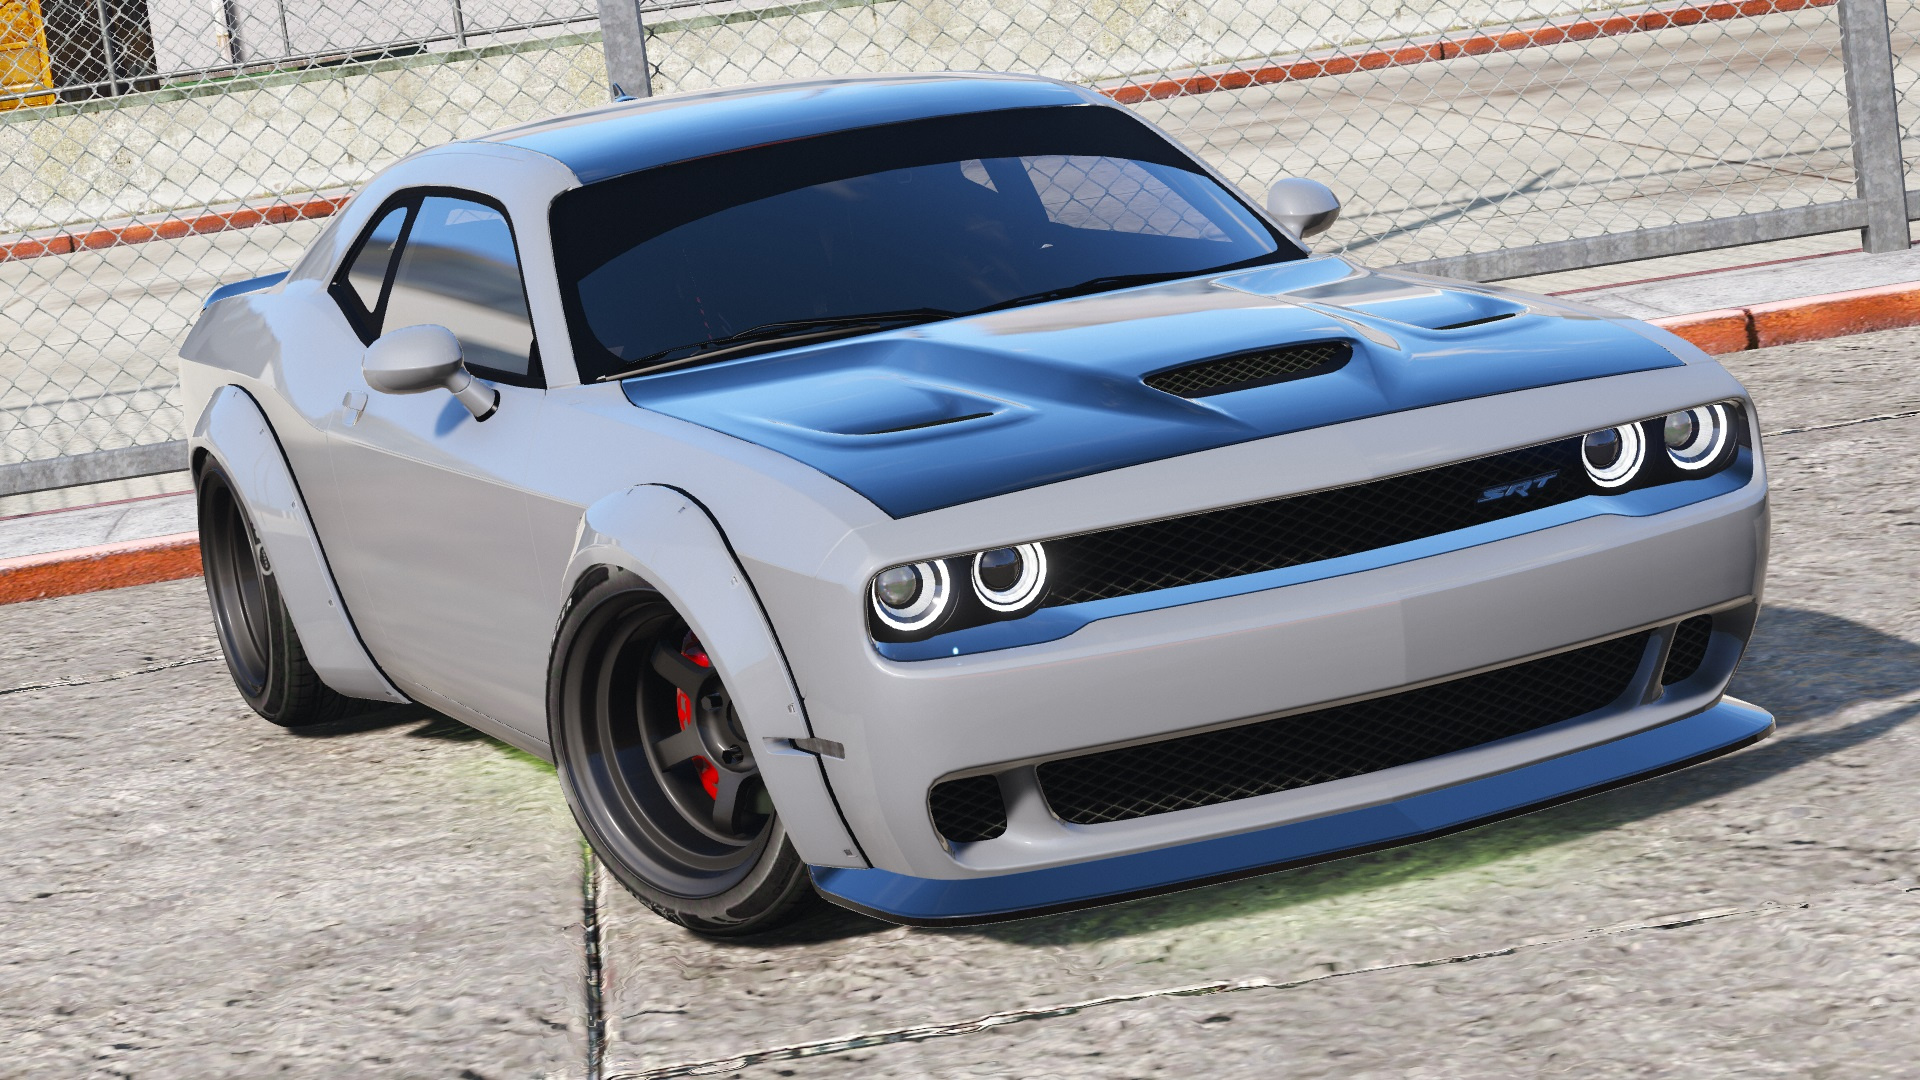 Dodge Challenger Hellcat Libertywalk The Fate Of The Furious Edition Add On Replace Gta5 Mods Com